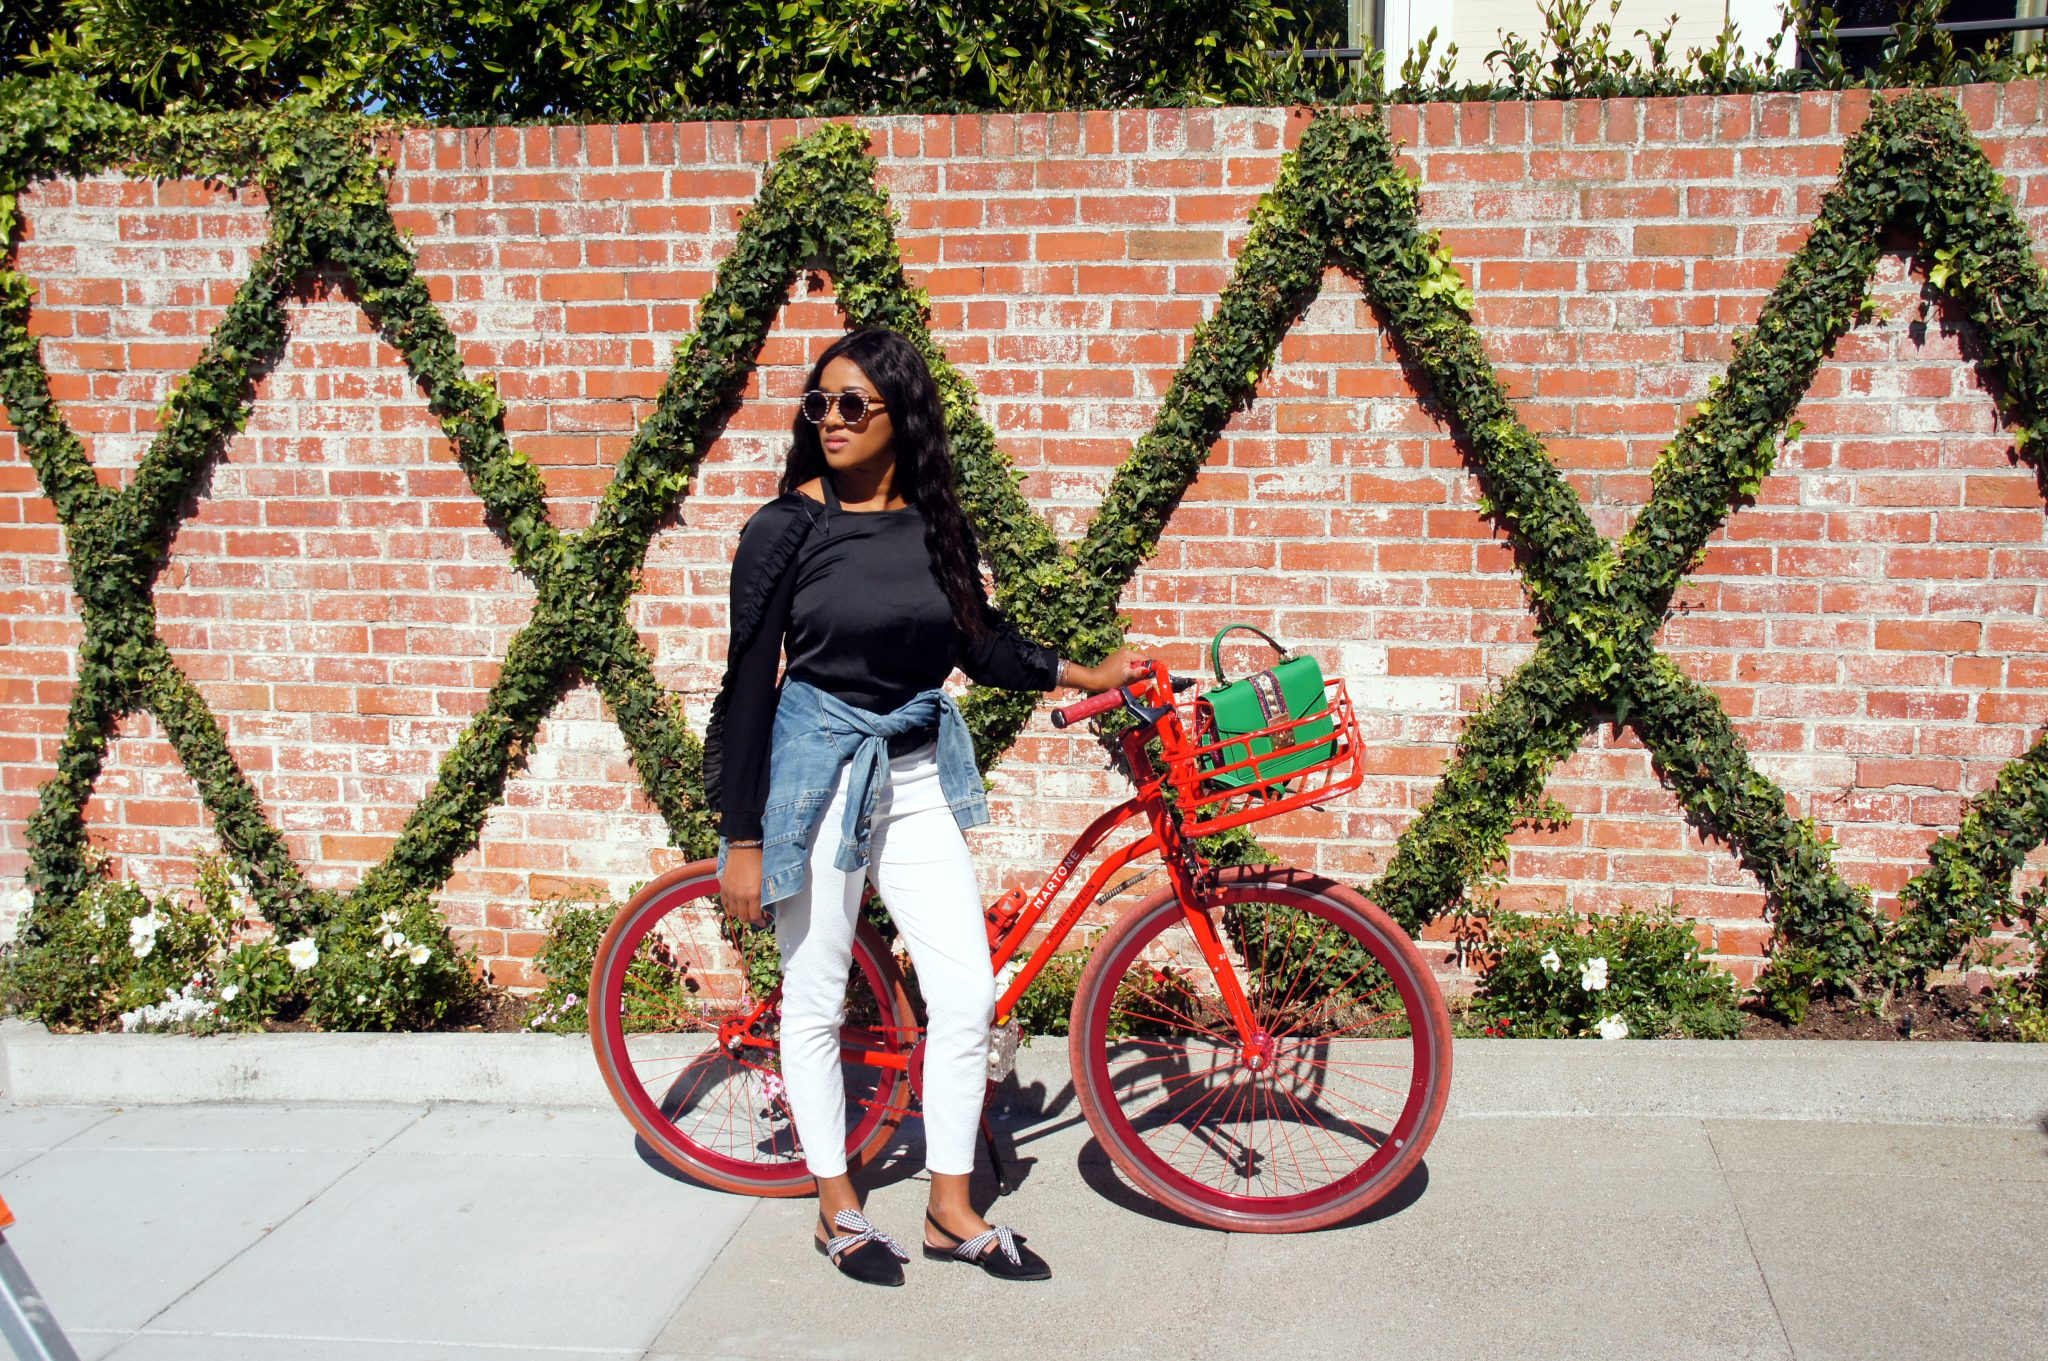 me with a red bike in front of a brick wall